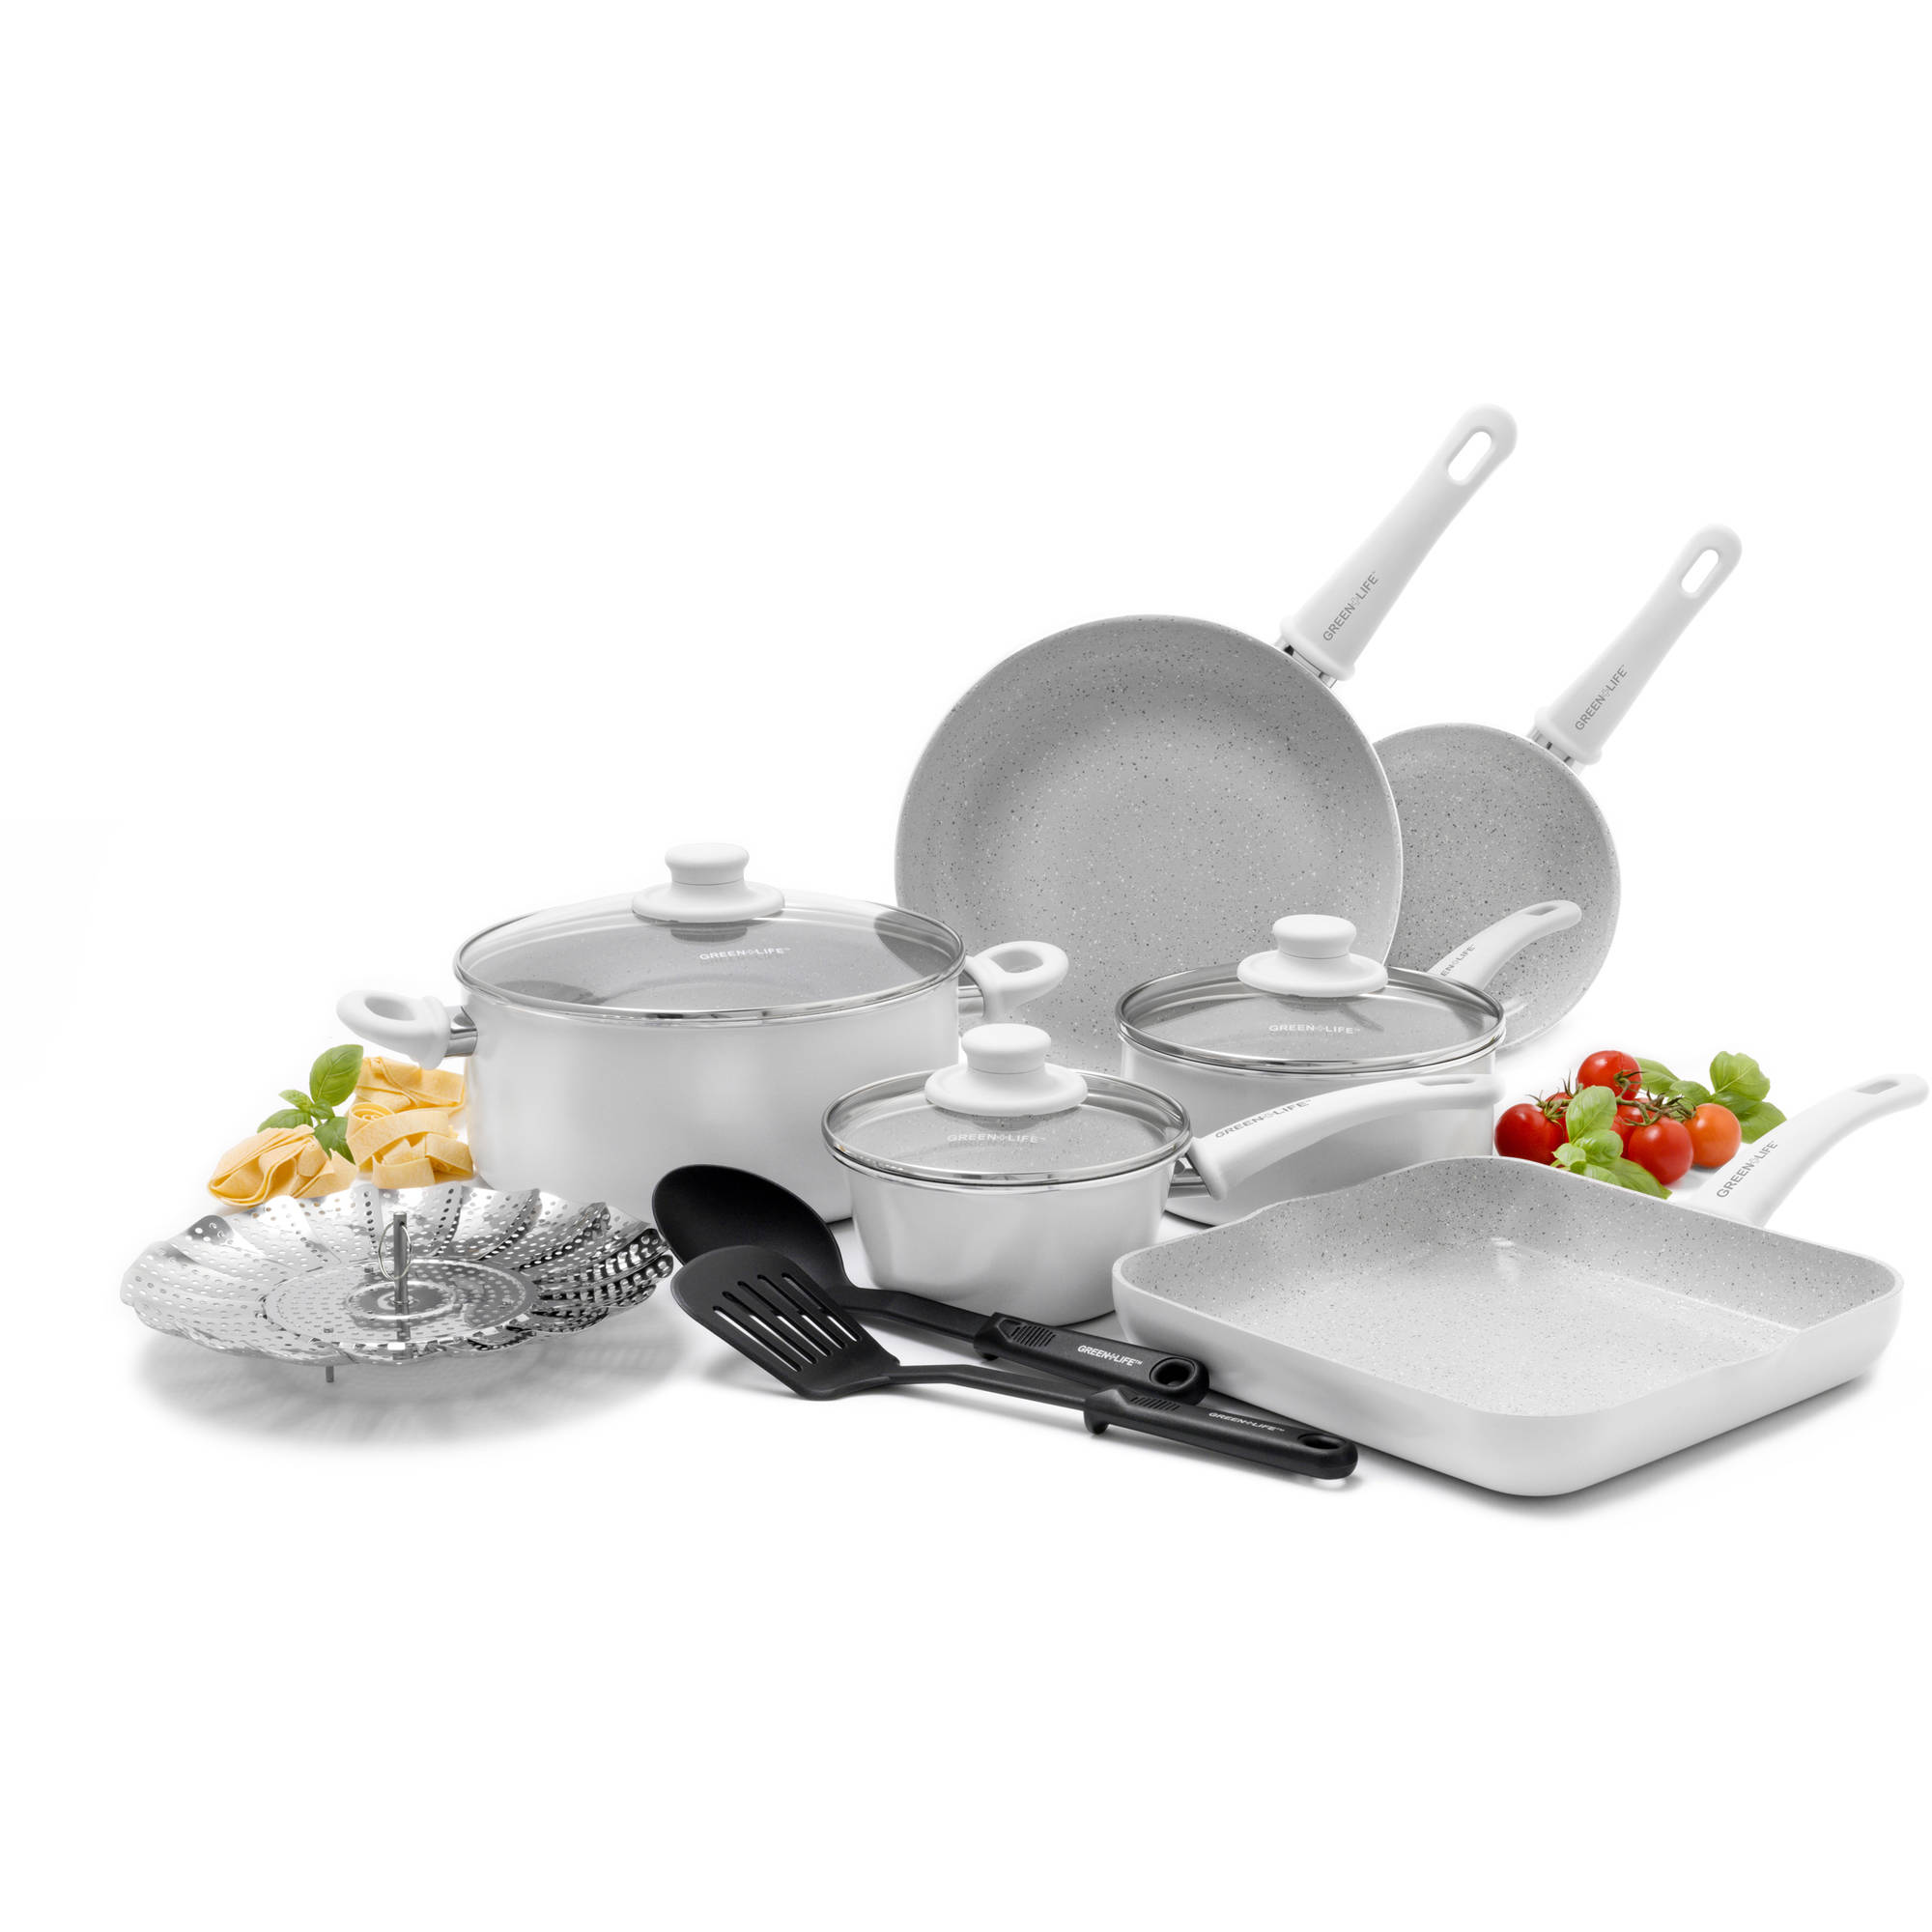 GreenLife Healthy Ceramic Rocks Performance Non-Stick 12-Piece Soft Grip Cookware Set